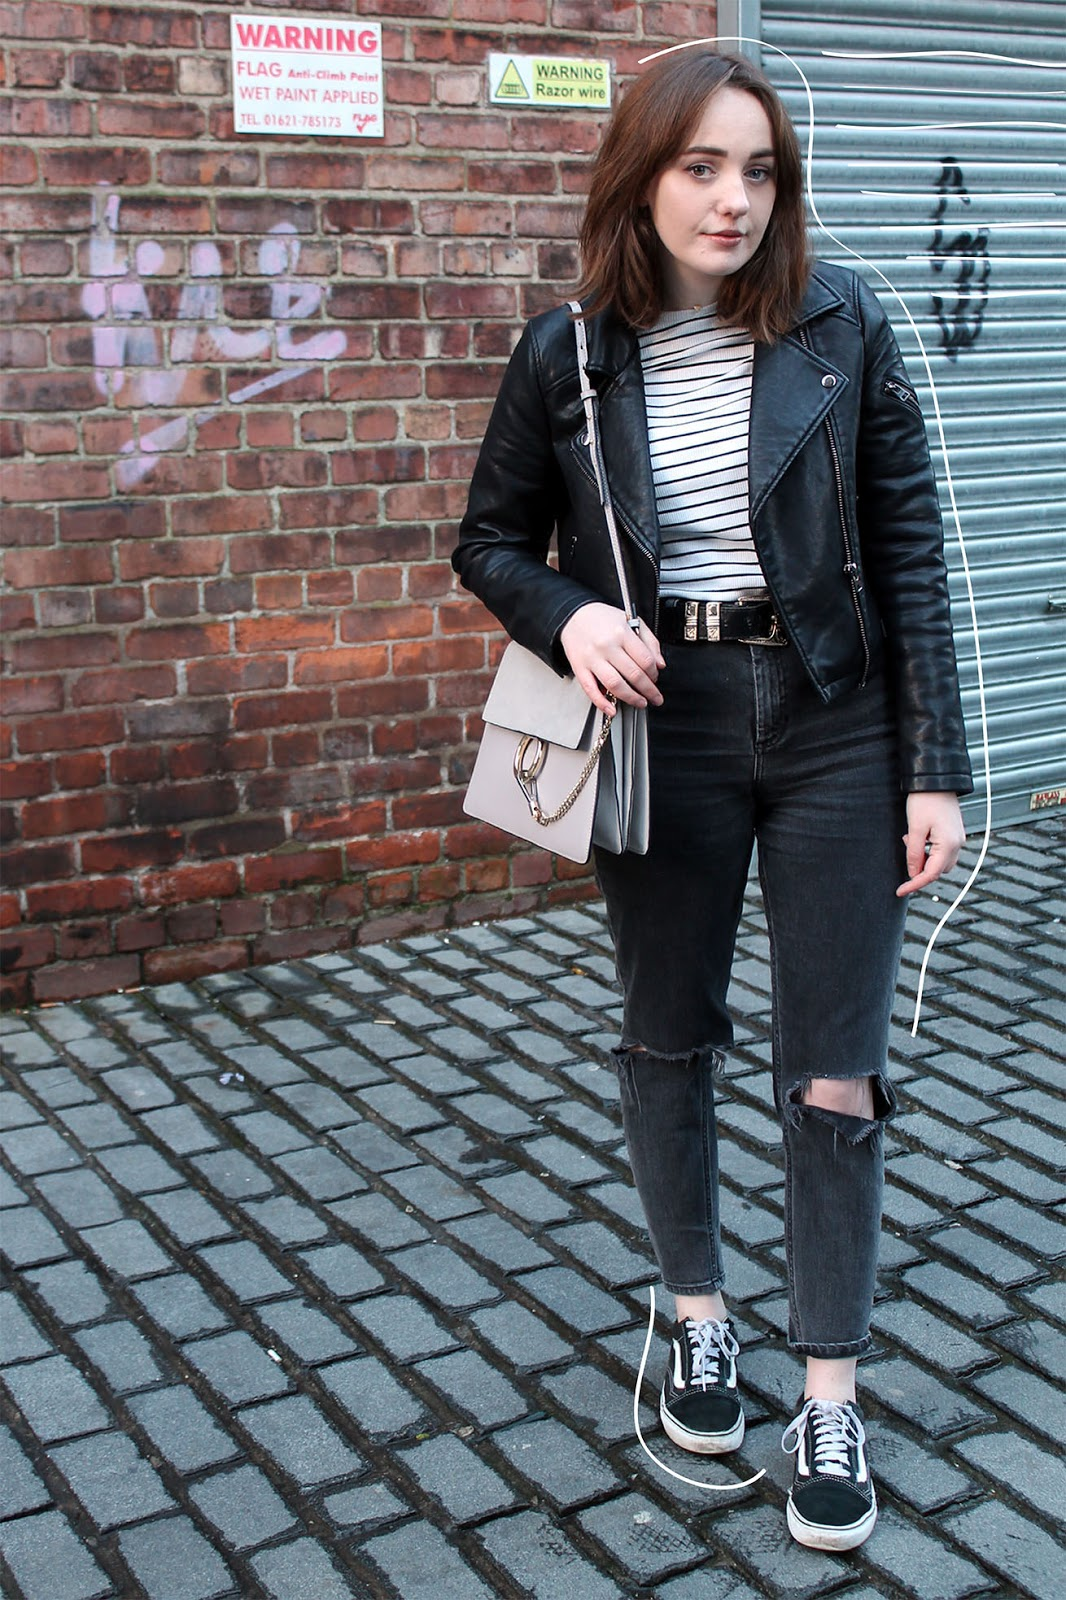 Liverpool blogger in topshop leather jacket, striped top, chloe faye bag, asos farleigh jeans and old skool vans